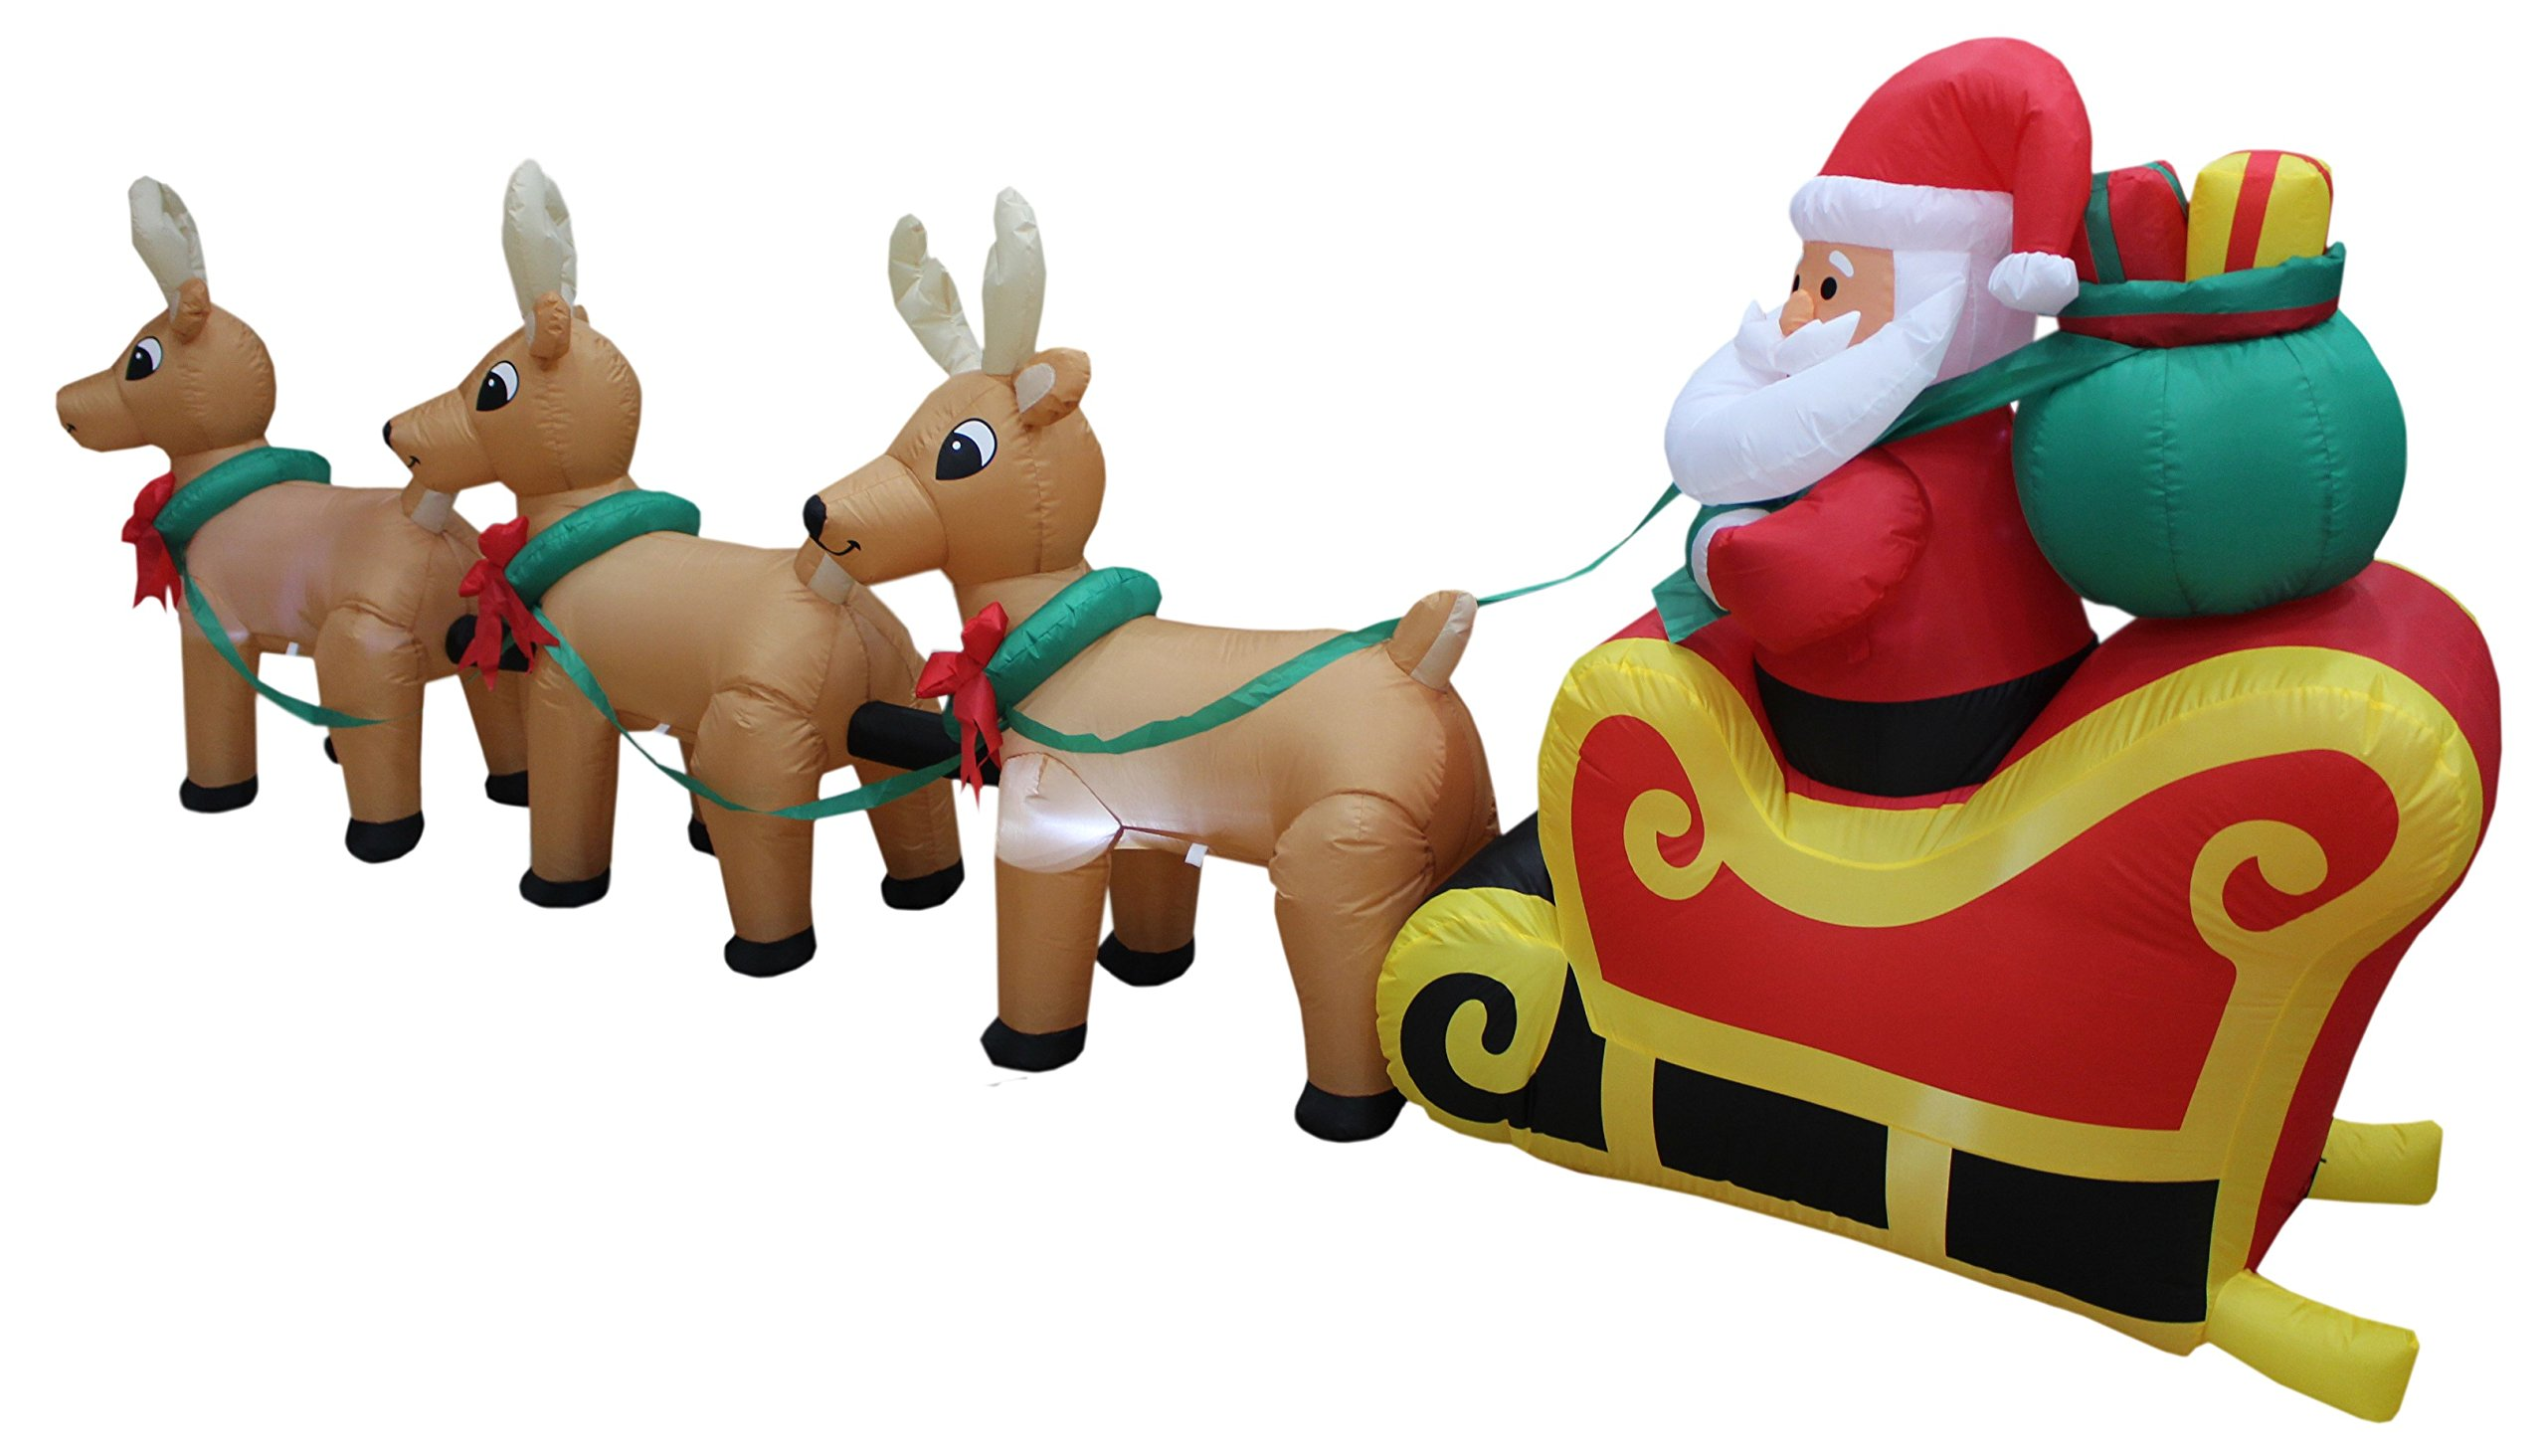 12 Foot Long Lighted Christmas Inflatable Santa Claus on Sleigh with 3 Reindeer and Christmas Tree Yard Decoration by BZB Goods (Image #3)